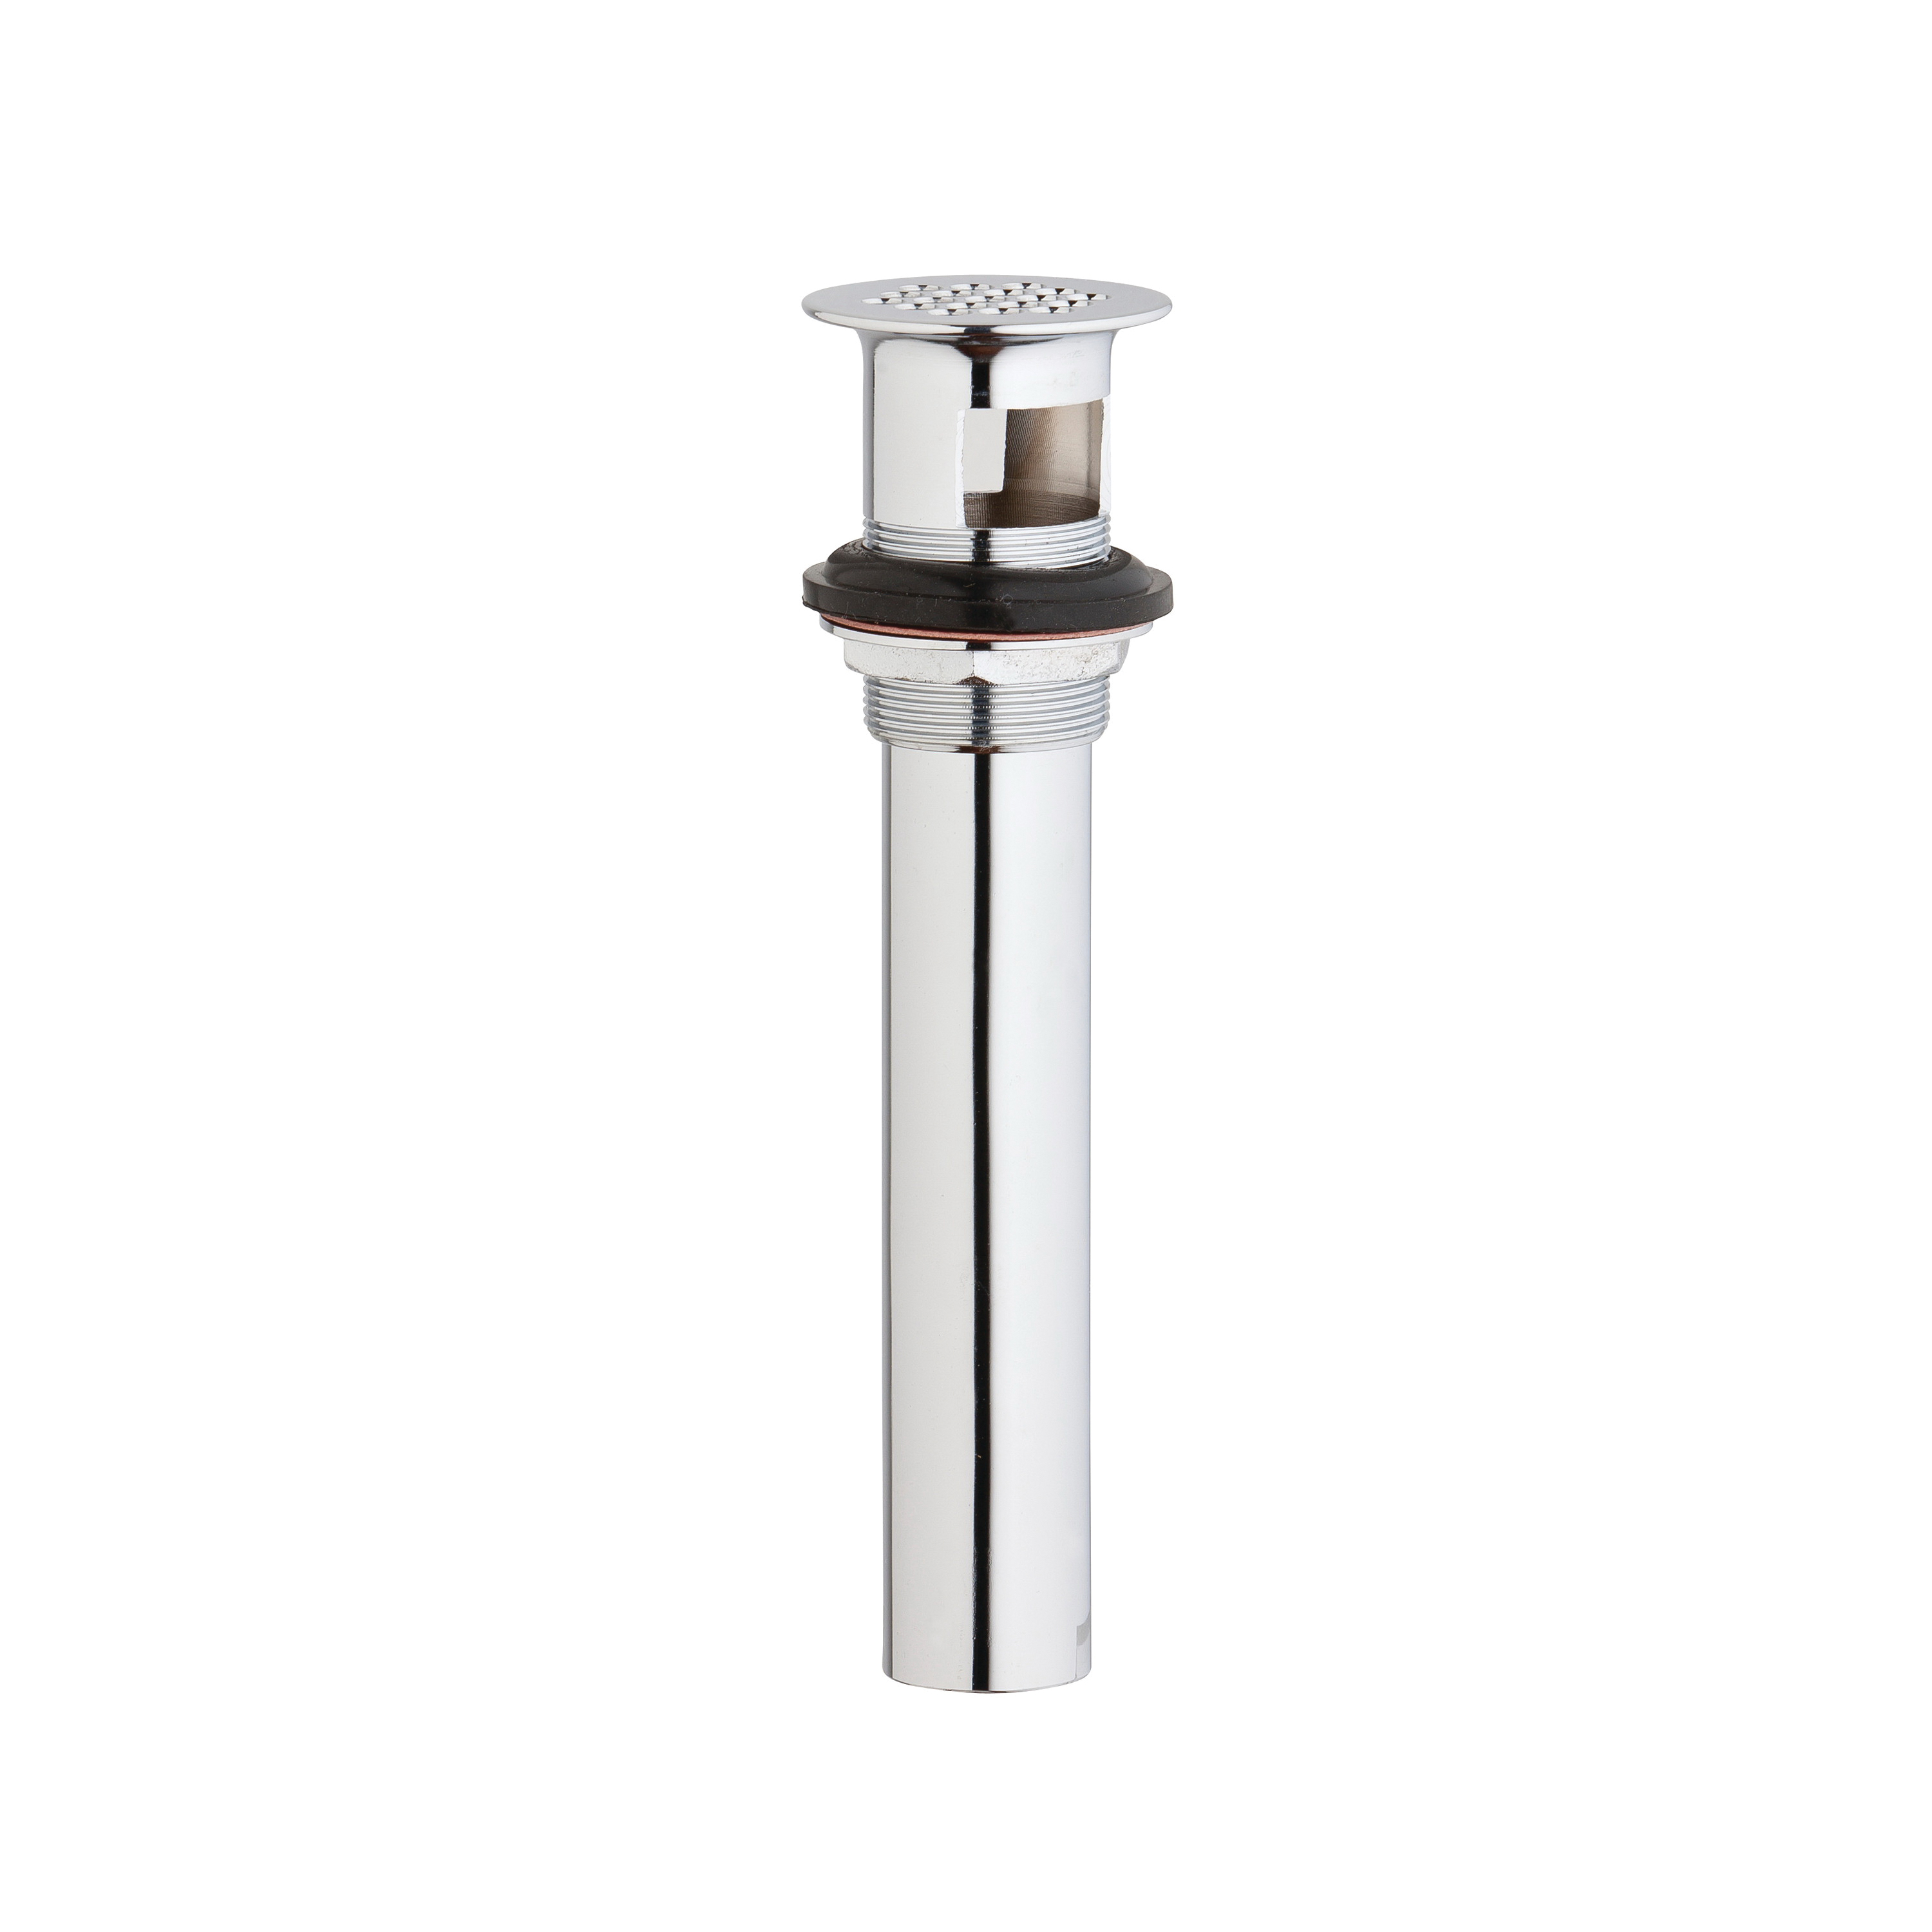 GROHE 28951000 Lavatory Grid Waste, StarLight® Chrome Plated, Domestic